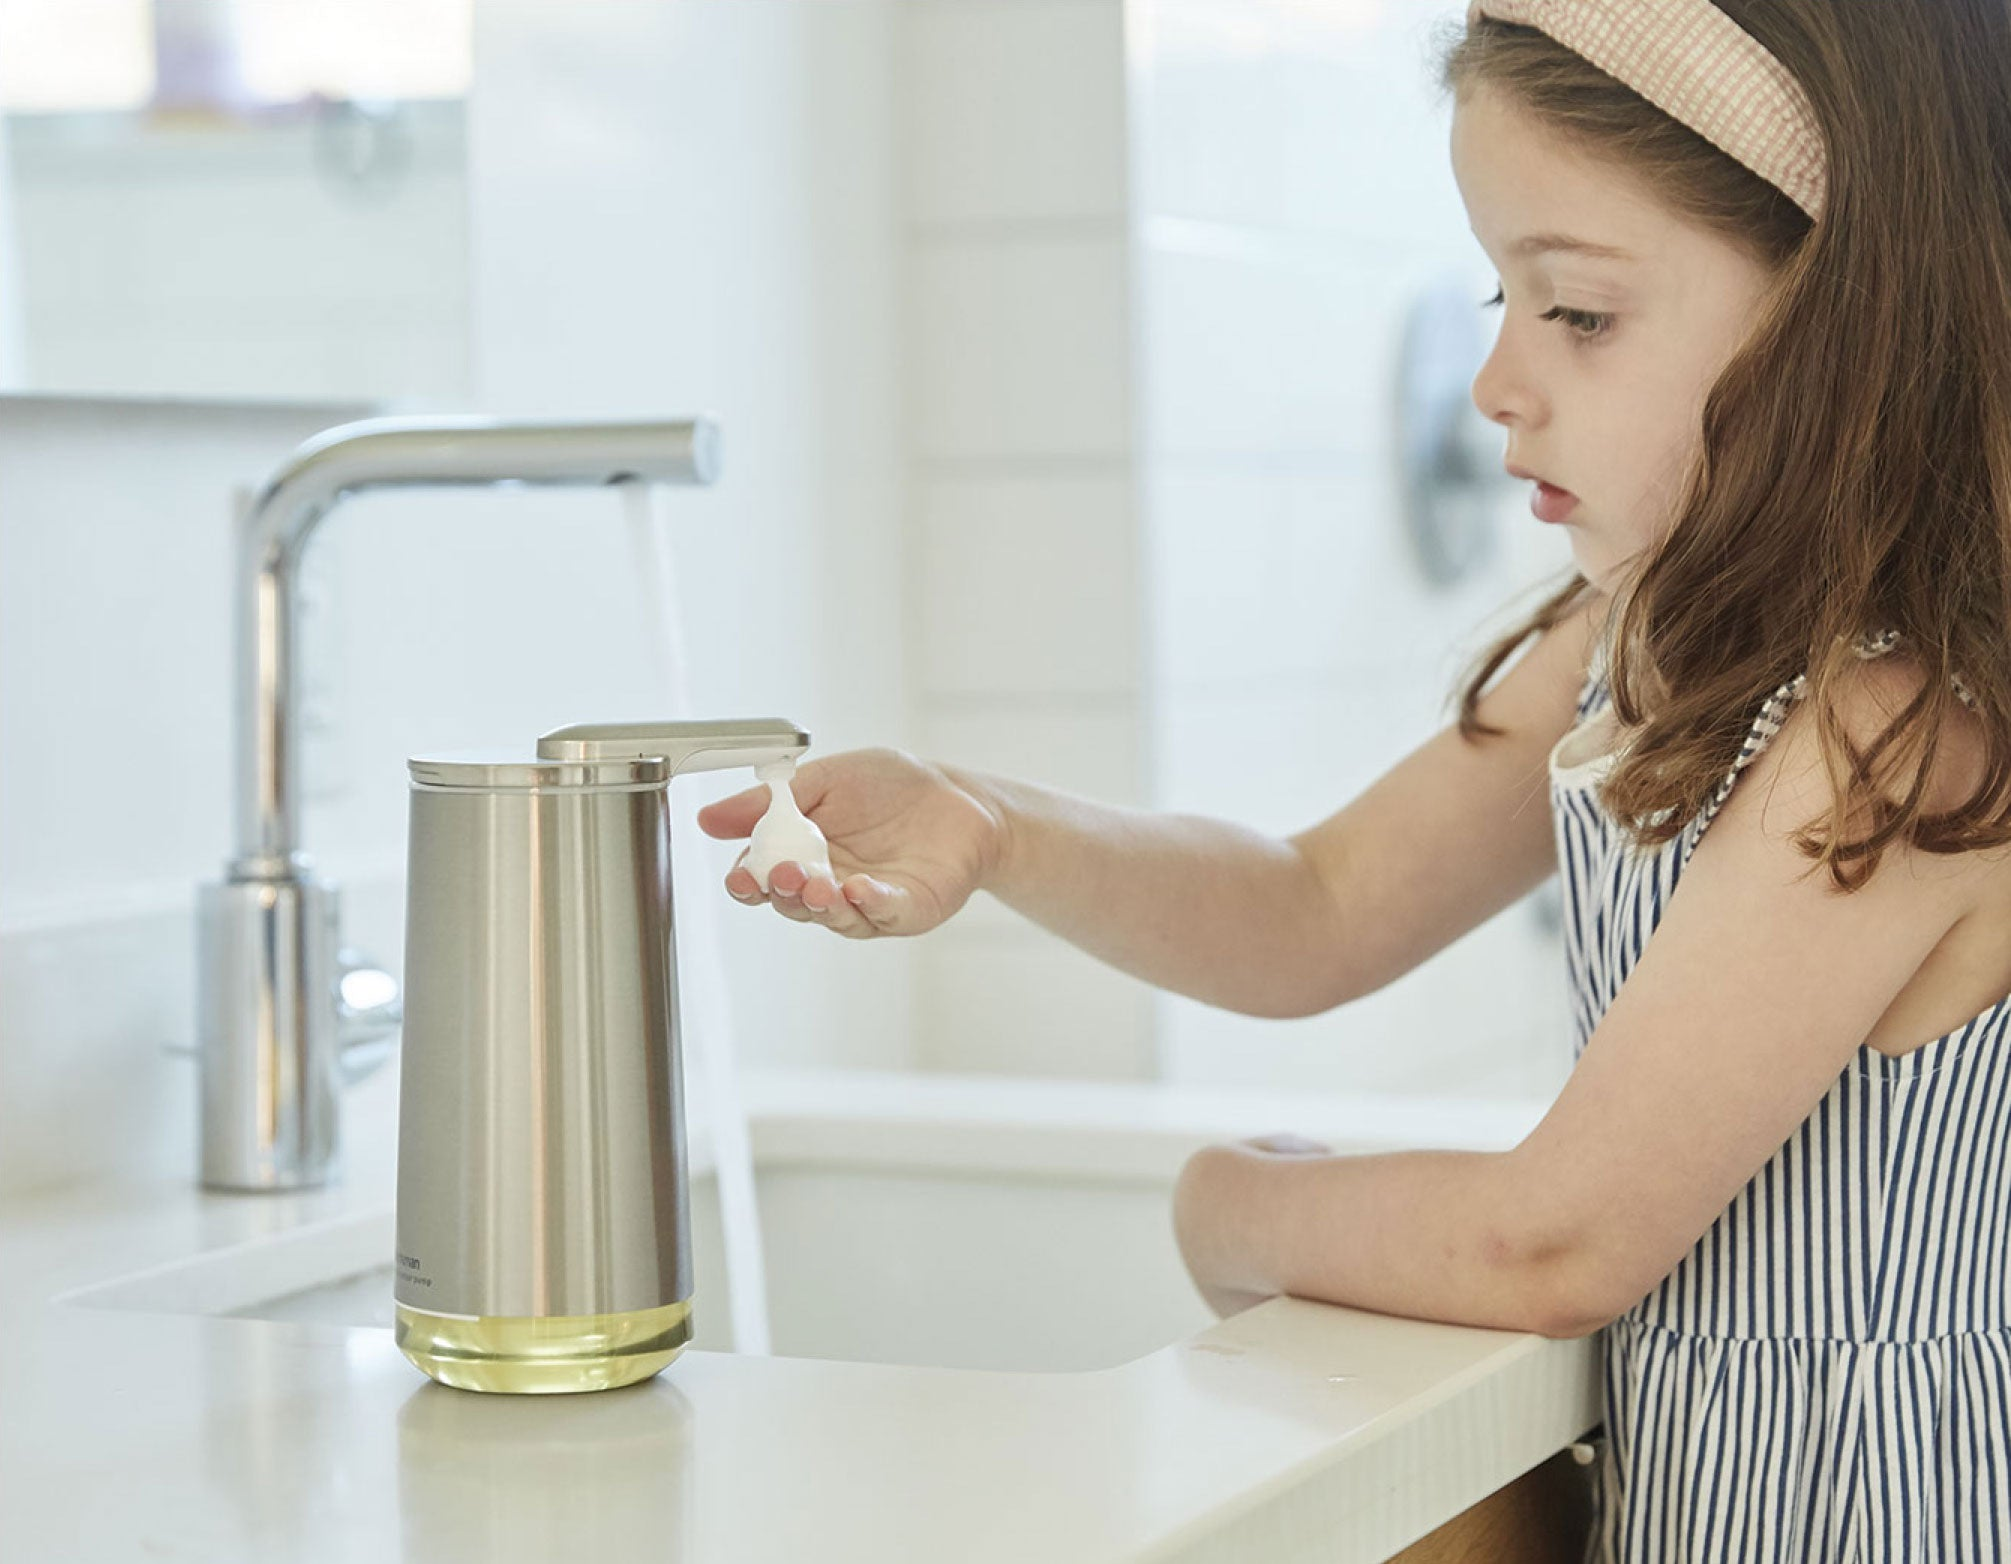 little girl using soap dispenser